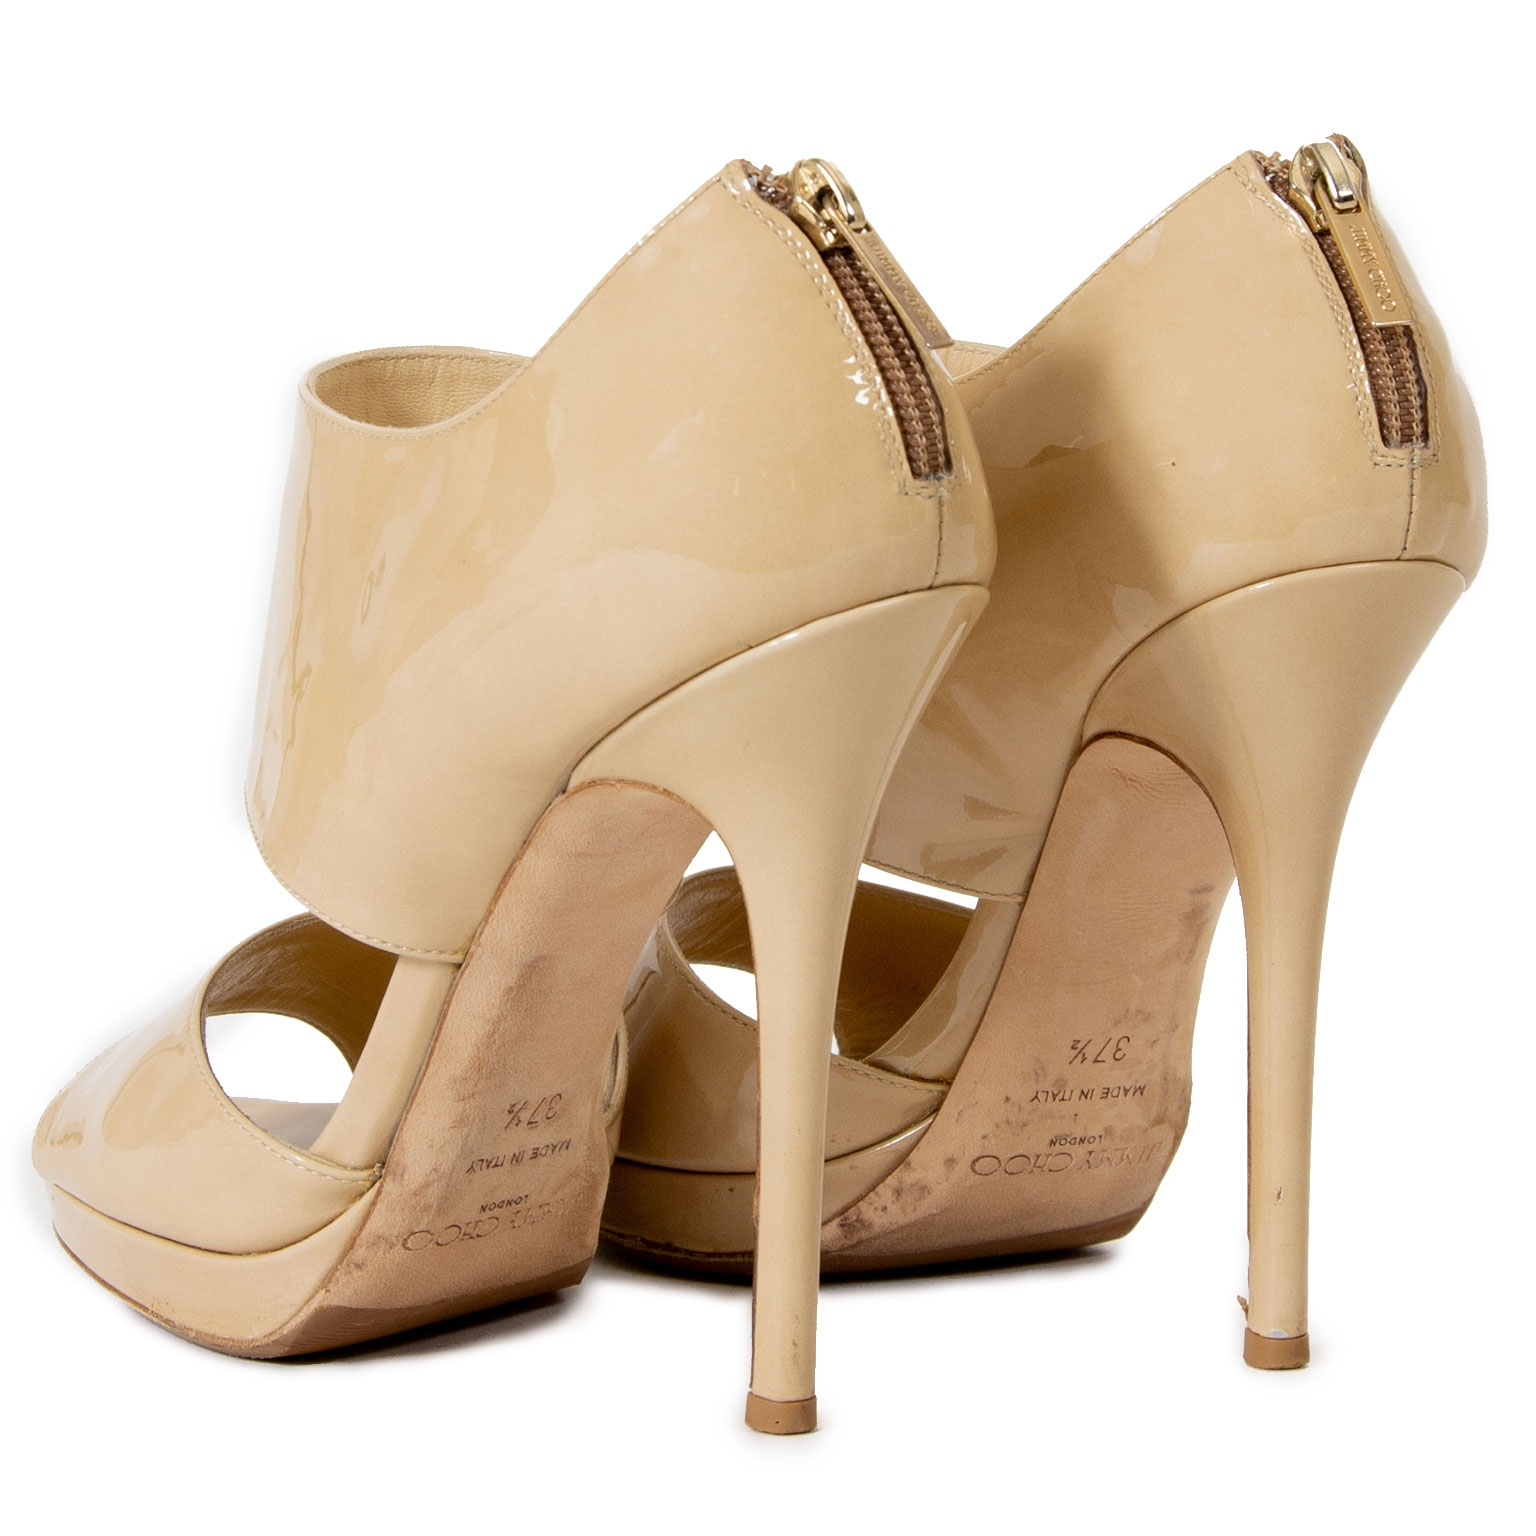 Are you looking for a unique pair of Jimmy Choo pumps? Shop safe and secure at Jimmy Choo Private Nude Patent Leather Sandals